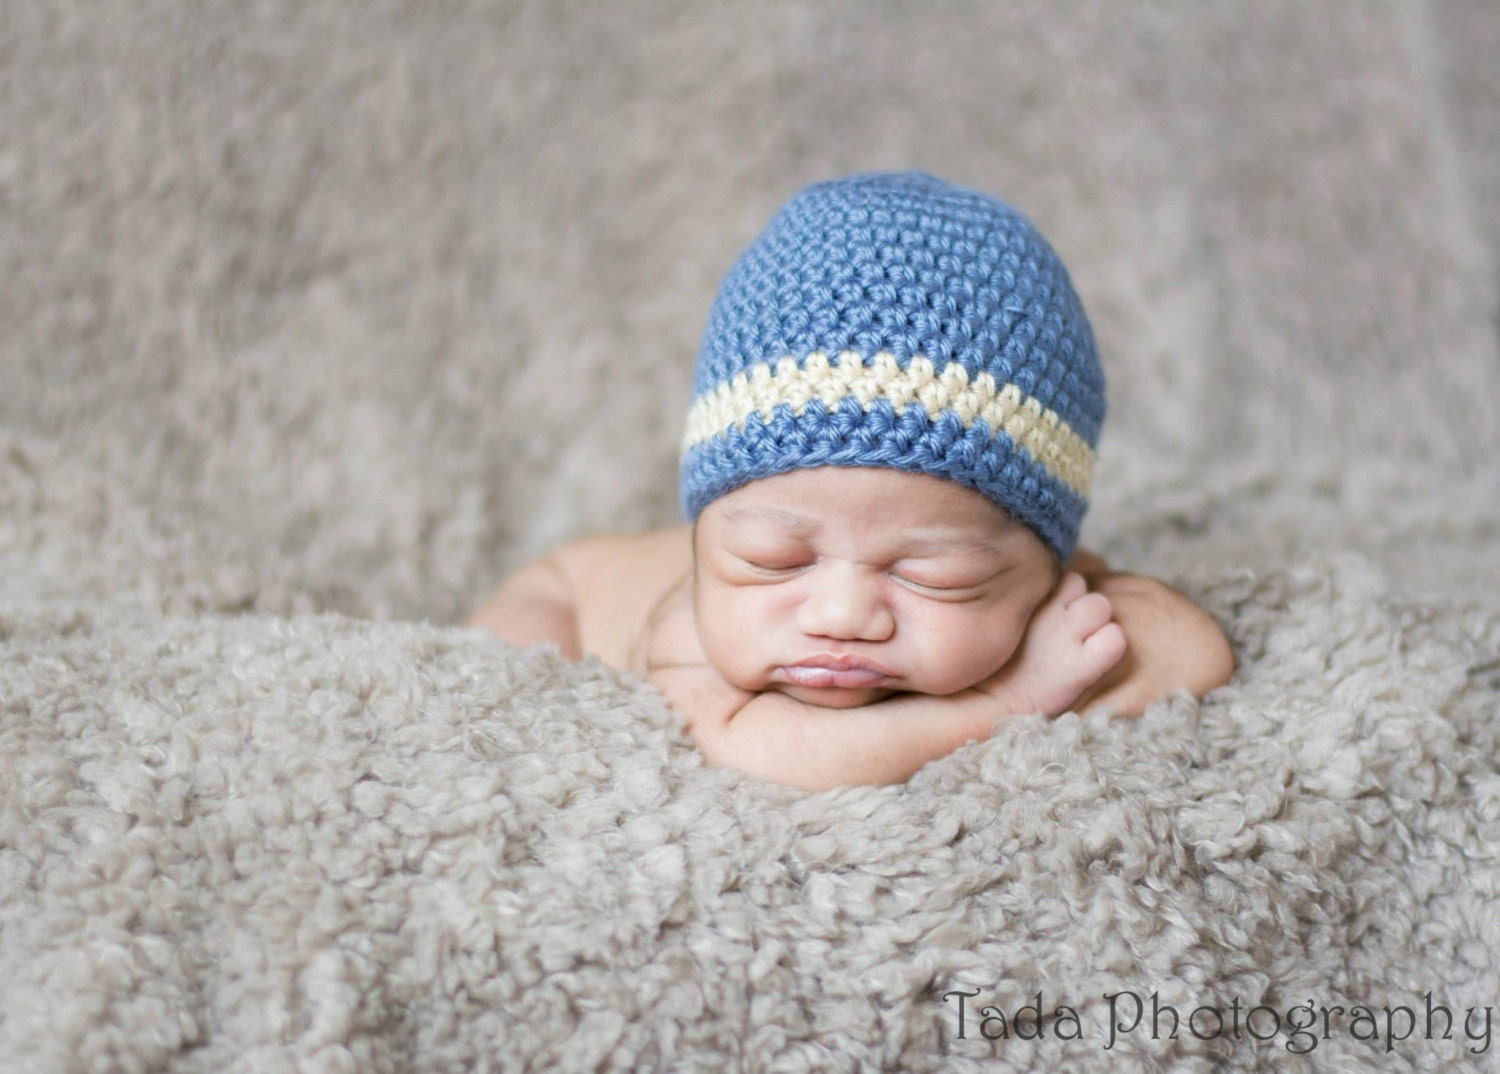 Pdf digital patternbaby beanie patternbaby crochet beanie this is a digital file bankloansurffo Images